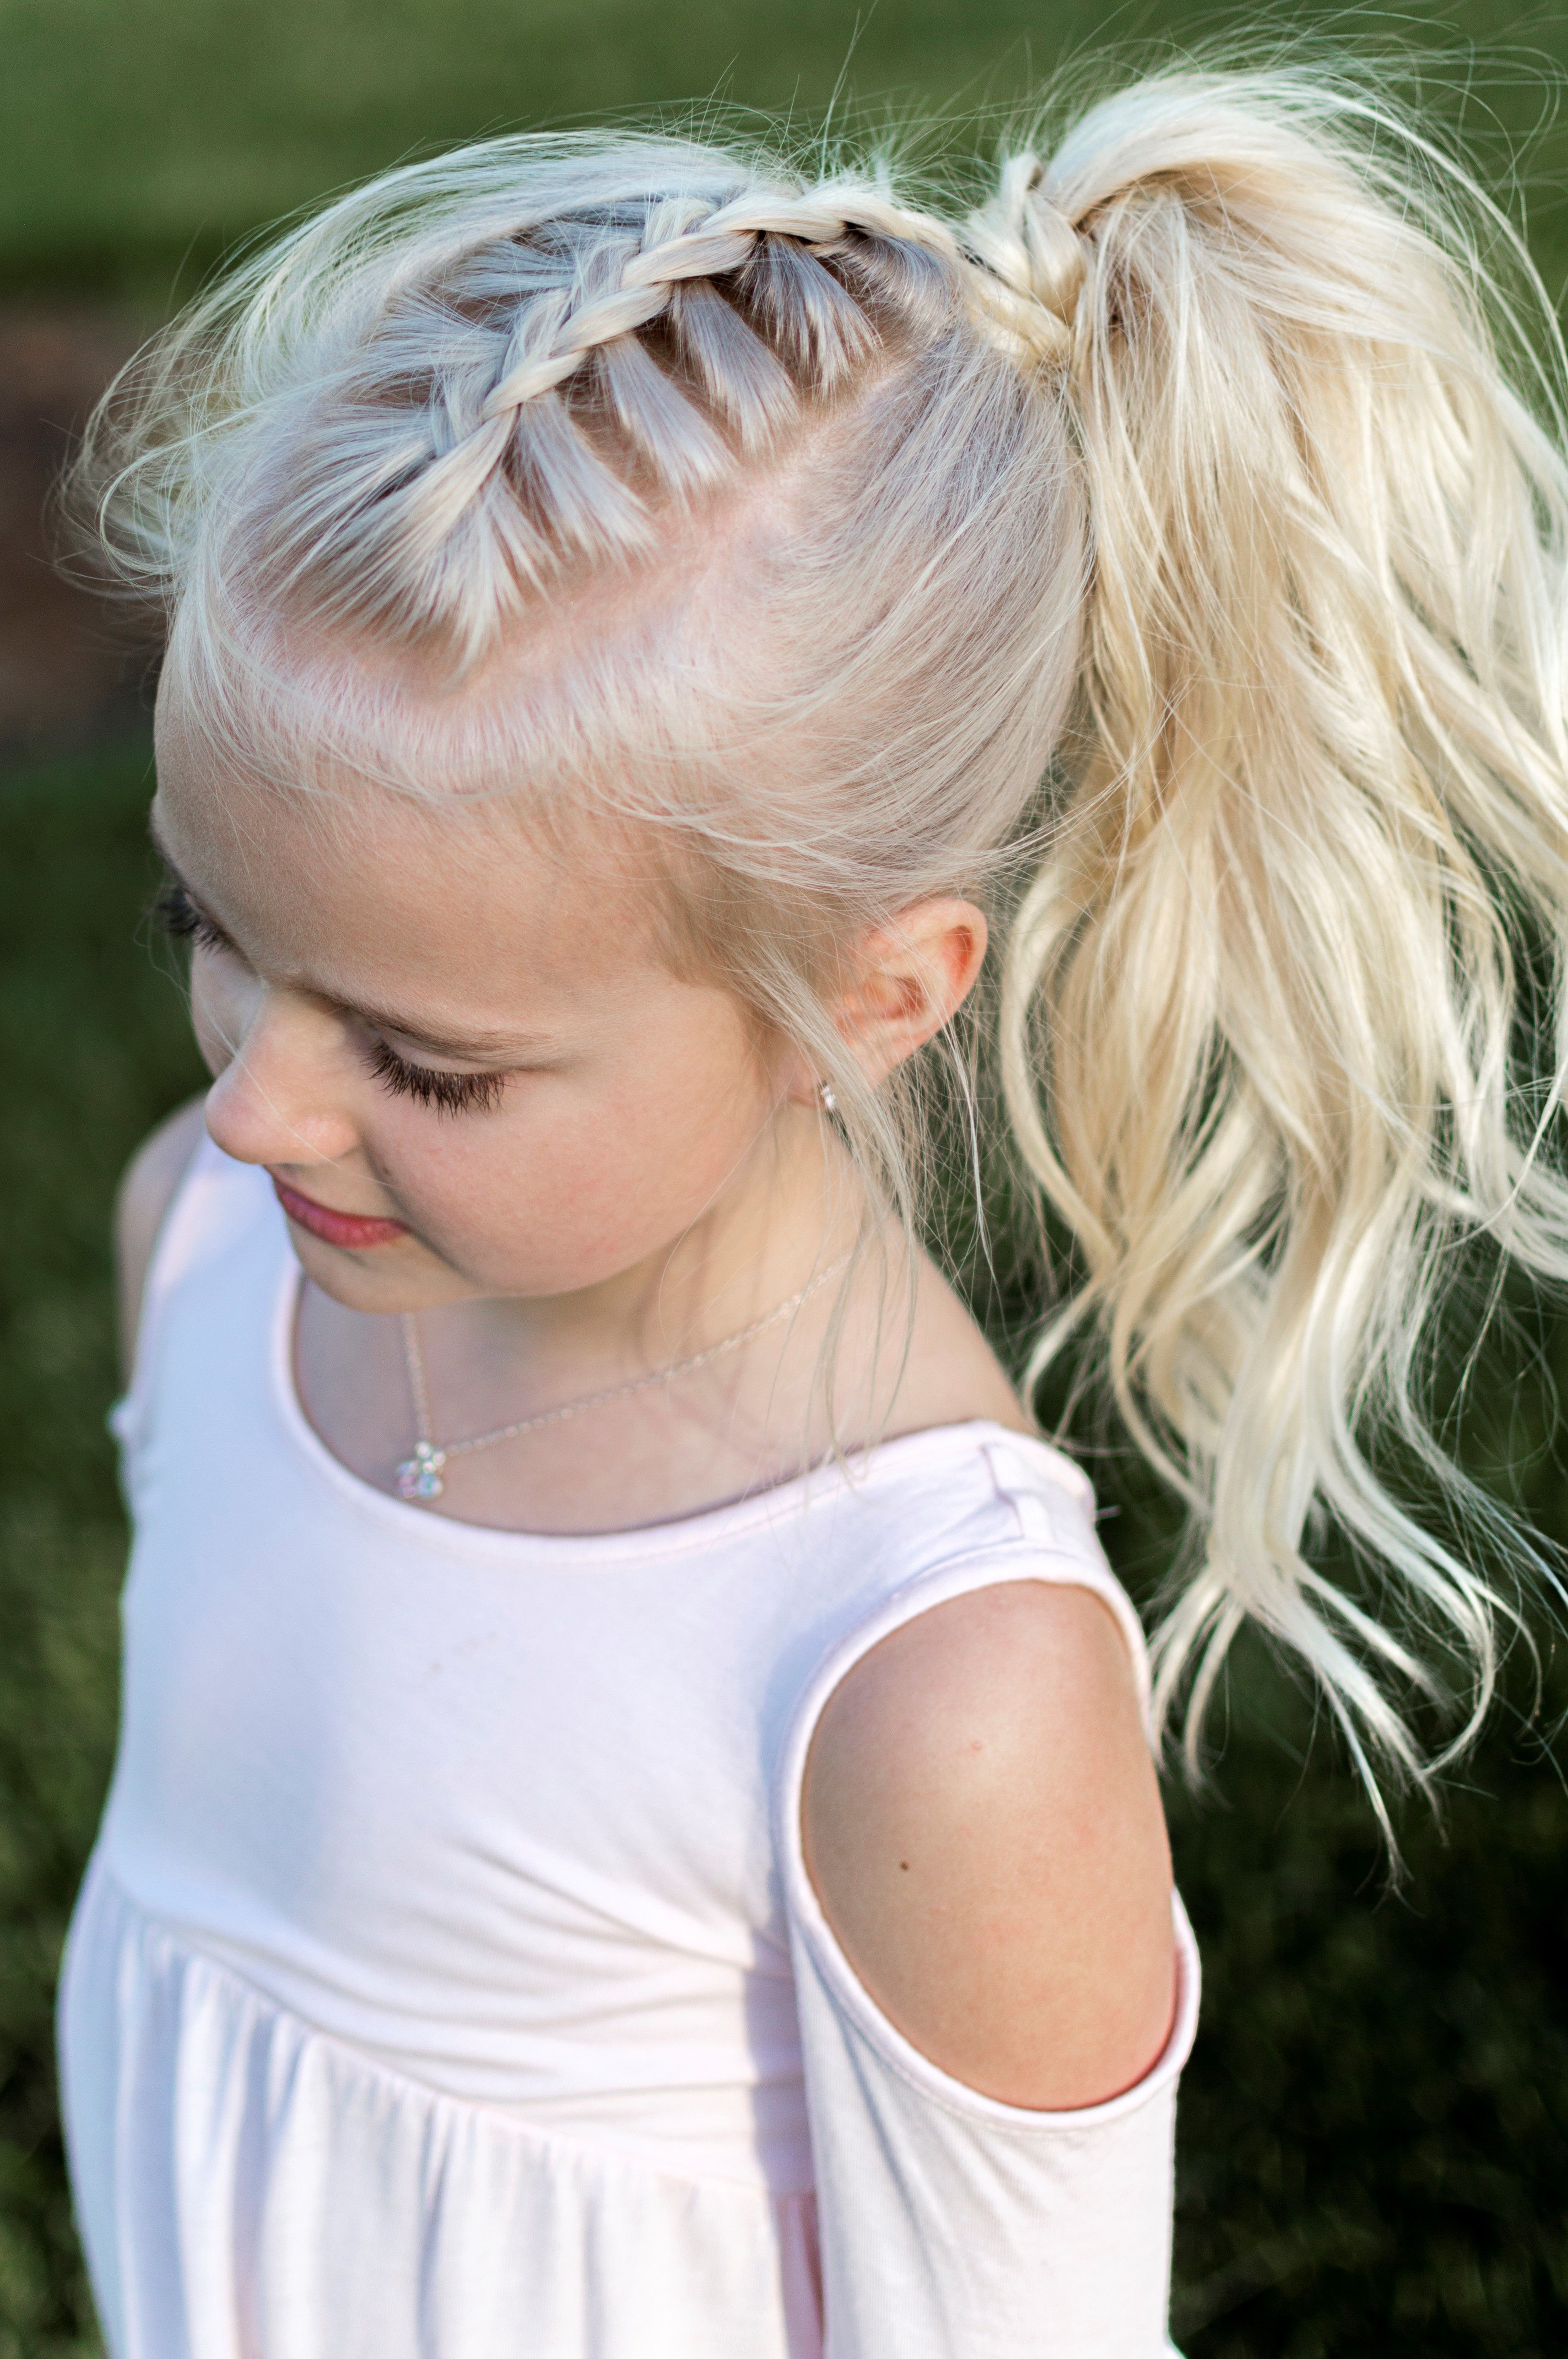 Newest High Braided Pony Hairstyles With Peek A Boo Bangs Regarding Little Girl Hairstyle French Braid Pony Tail Curls High Pony (View 16 of 20)